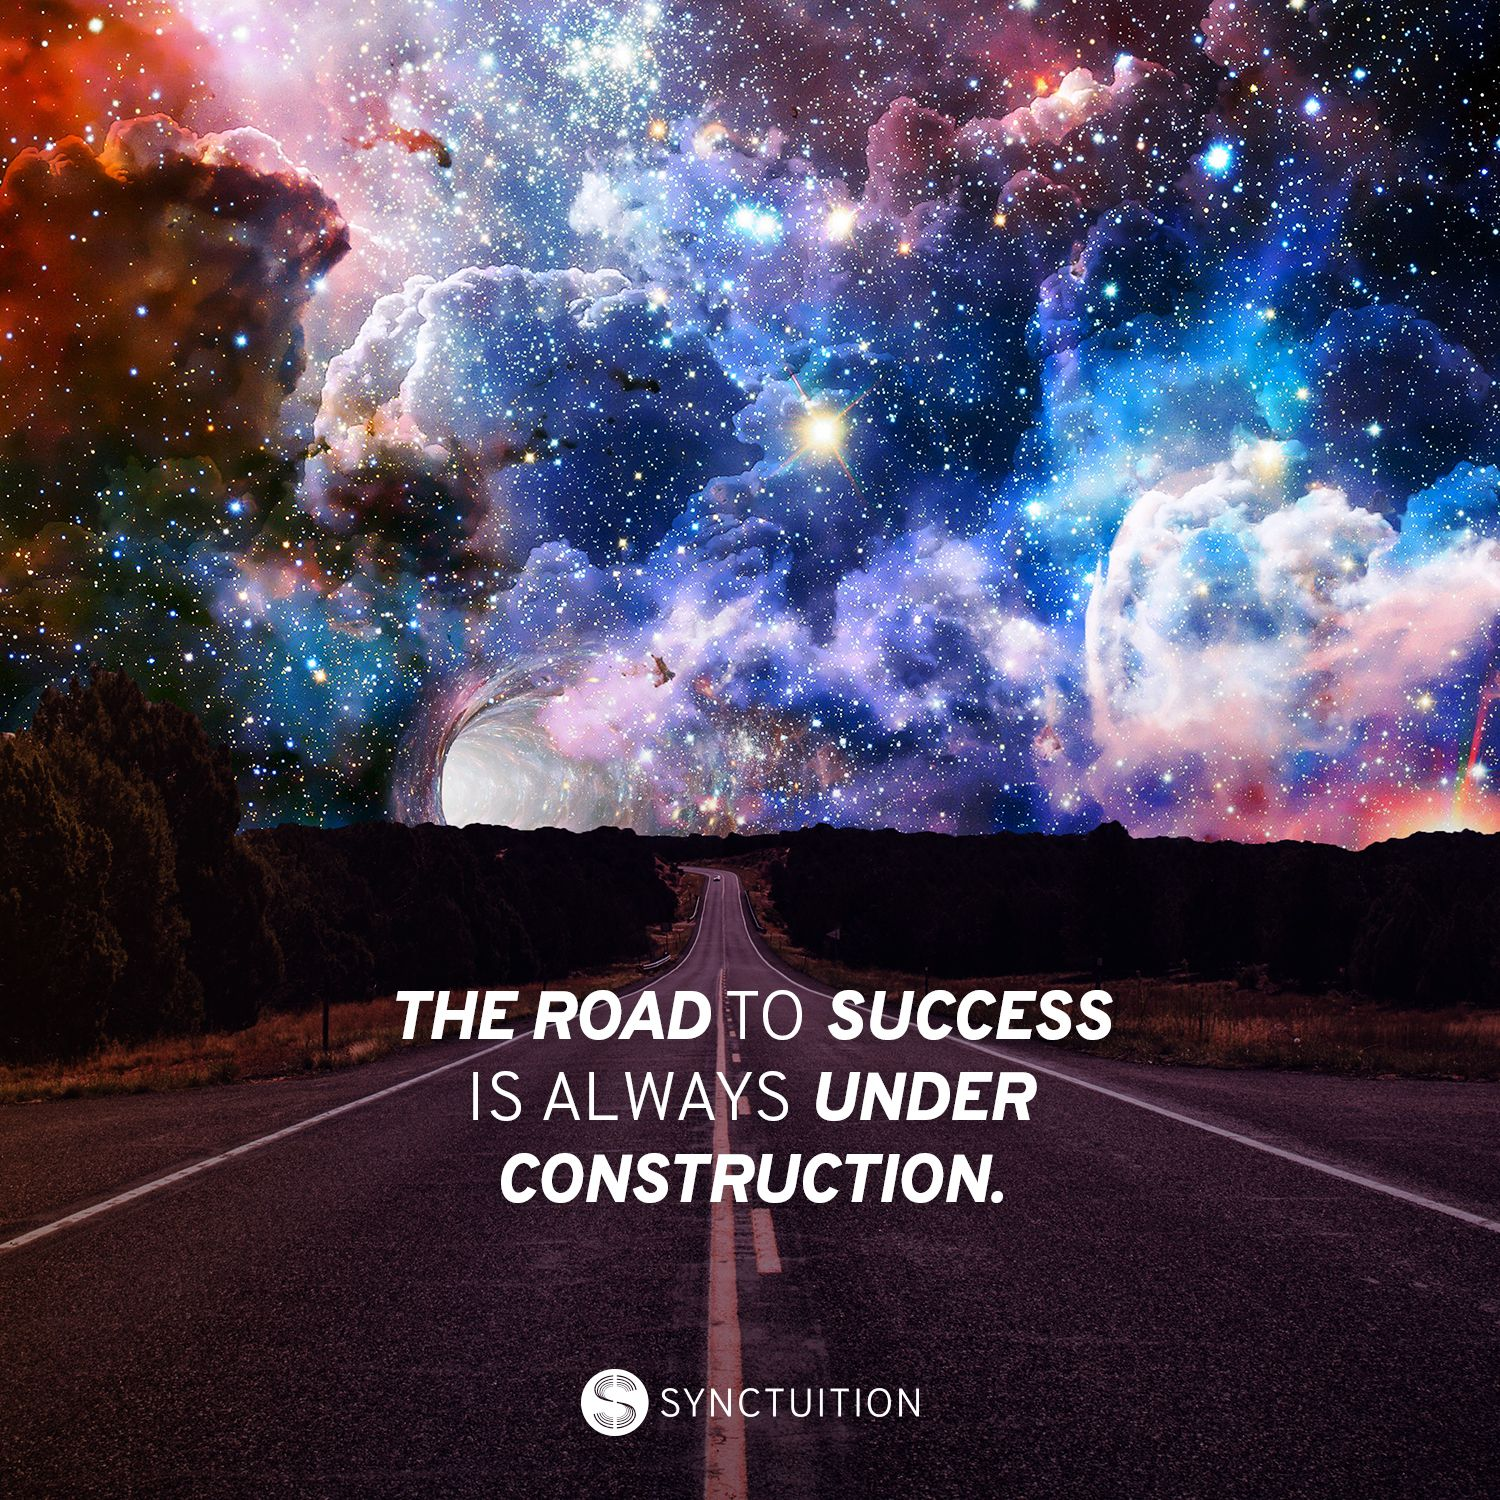 A mysterious road with a mesmerizing sky scene with the quote